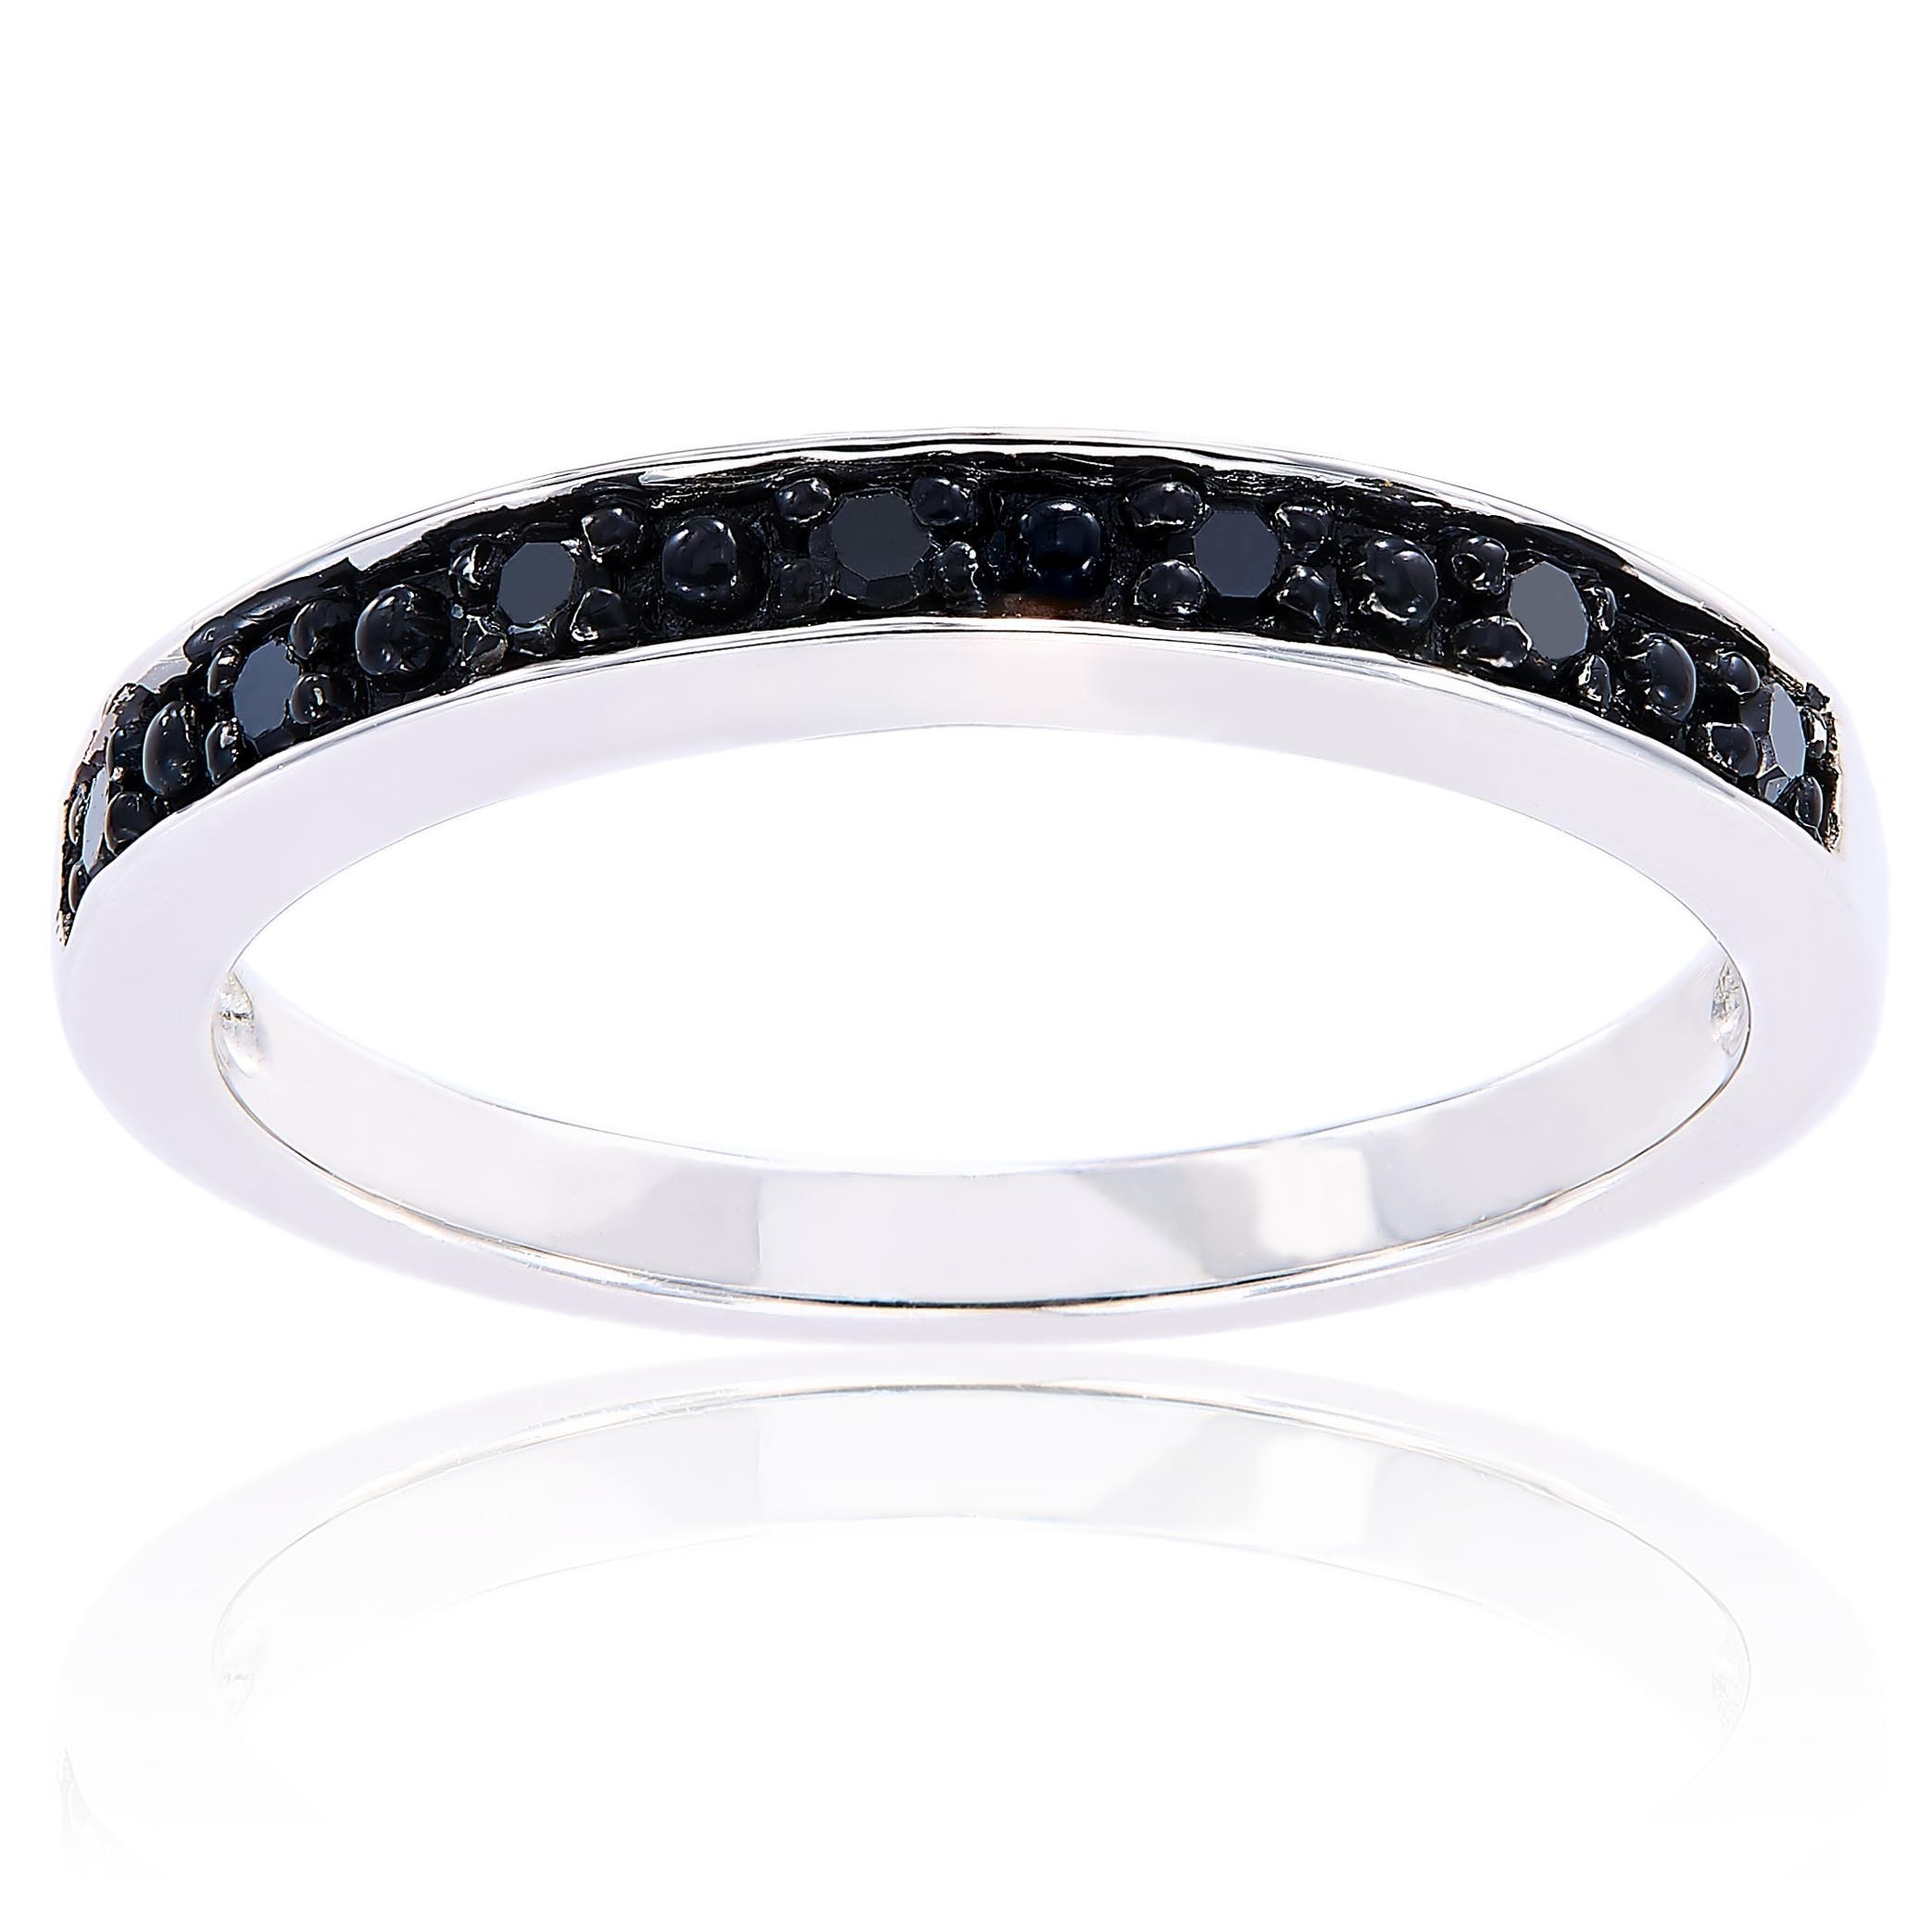 Miadora Sterling Silver Black Diamond Stackable Anniversary Wedding Band Ring With Regard To 2020 Enhanced Black And White Diamond Vintage Style Anniversary Bands In Sterling Silver (View 5 of 25)